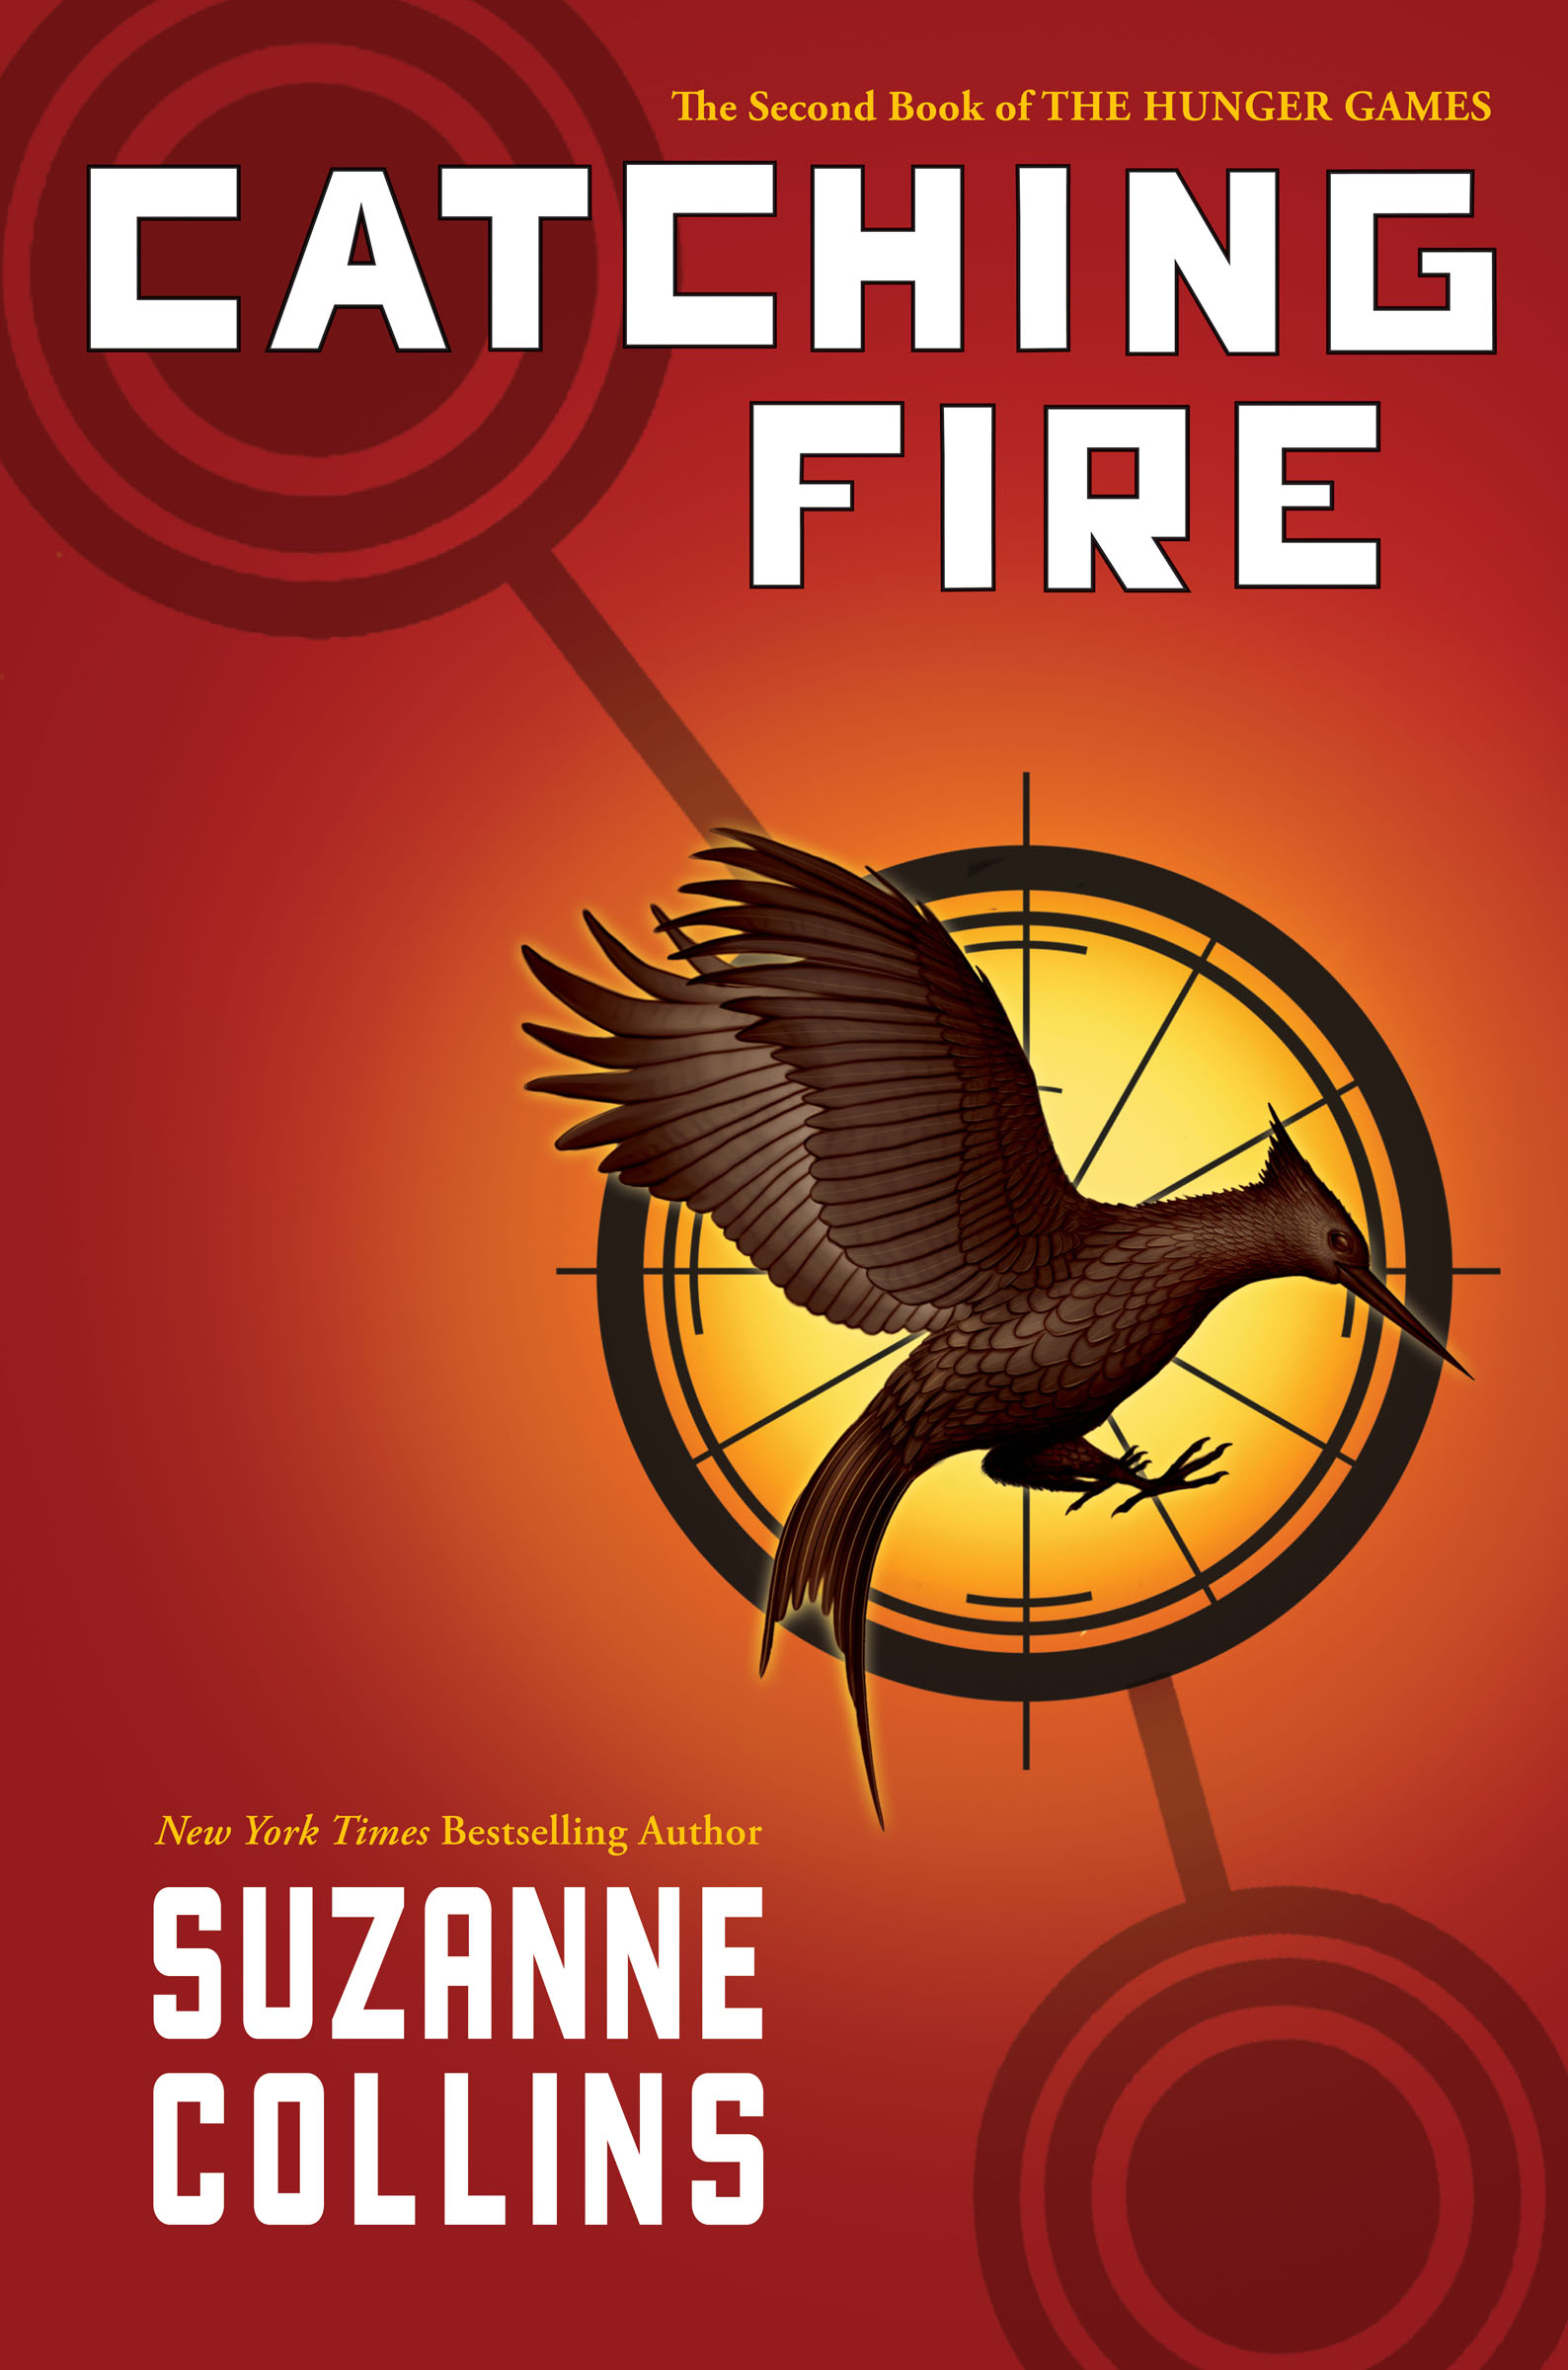 Couverture de ?Catching fire?